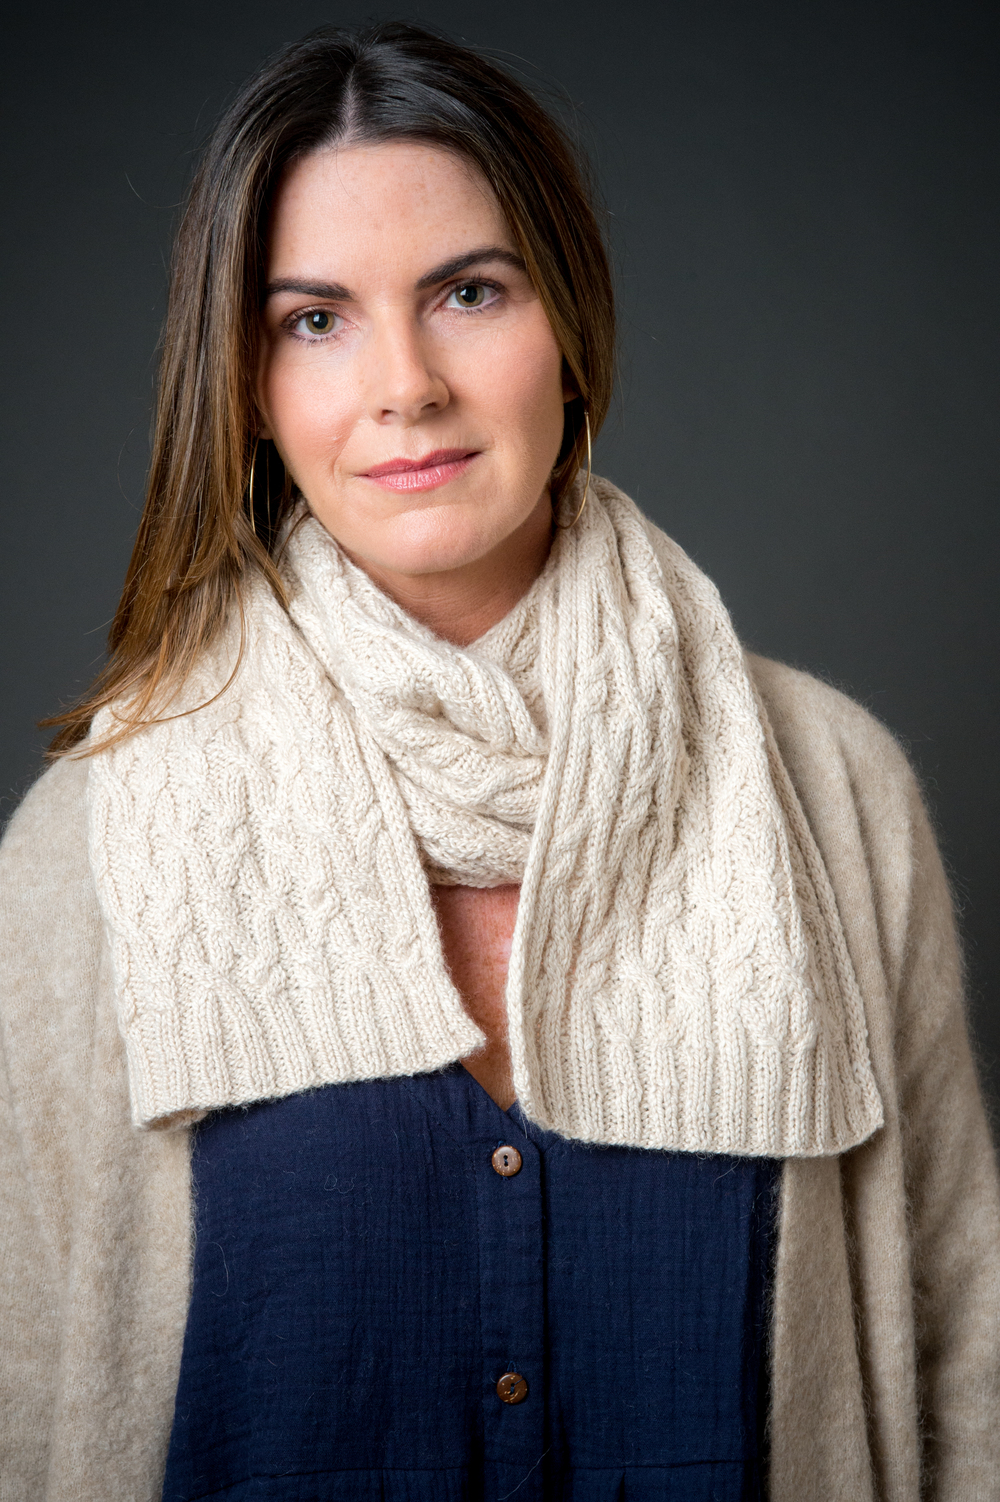 Jordan Pond Scarf by Kate Gagnon Osborn